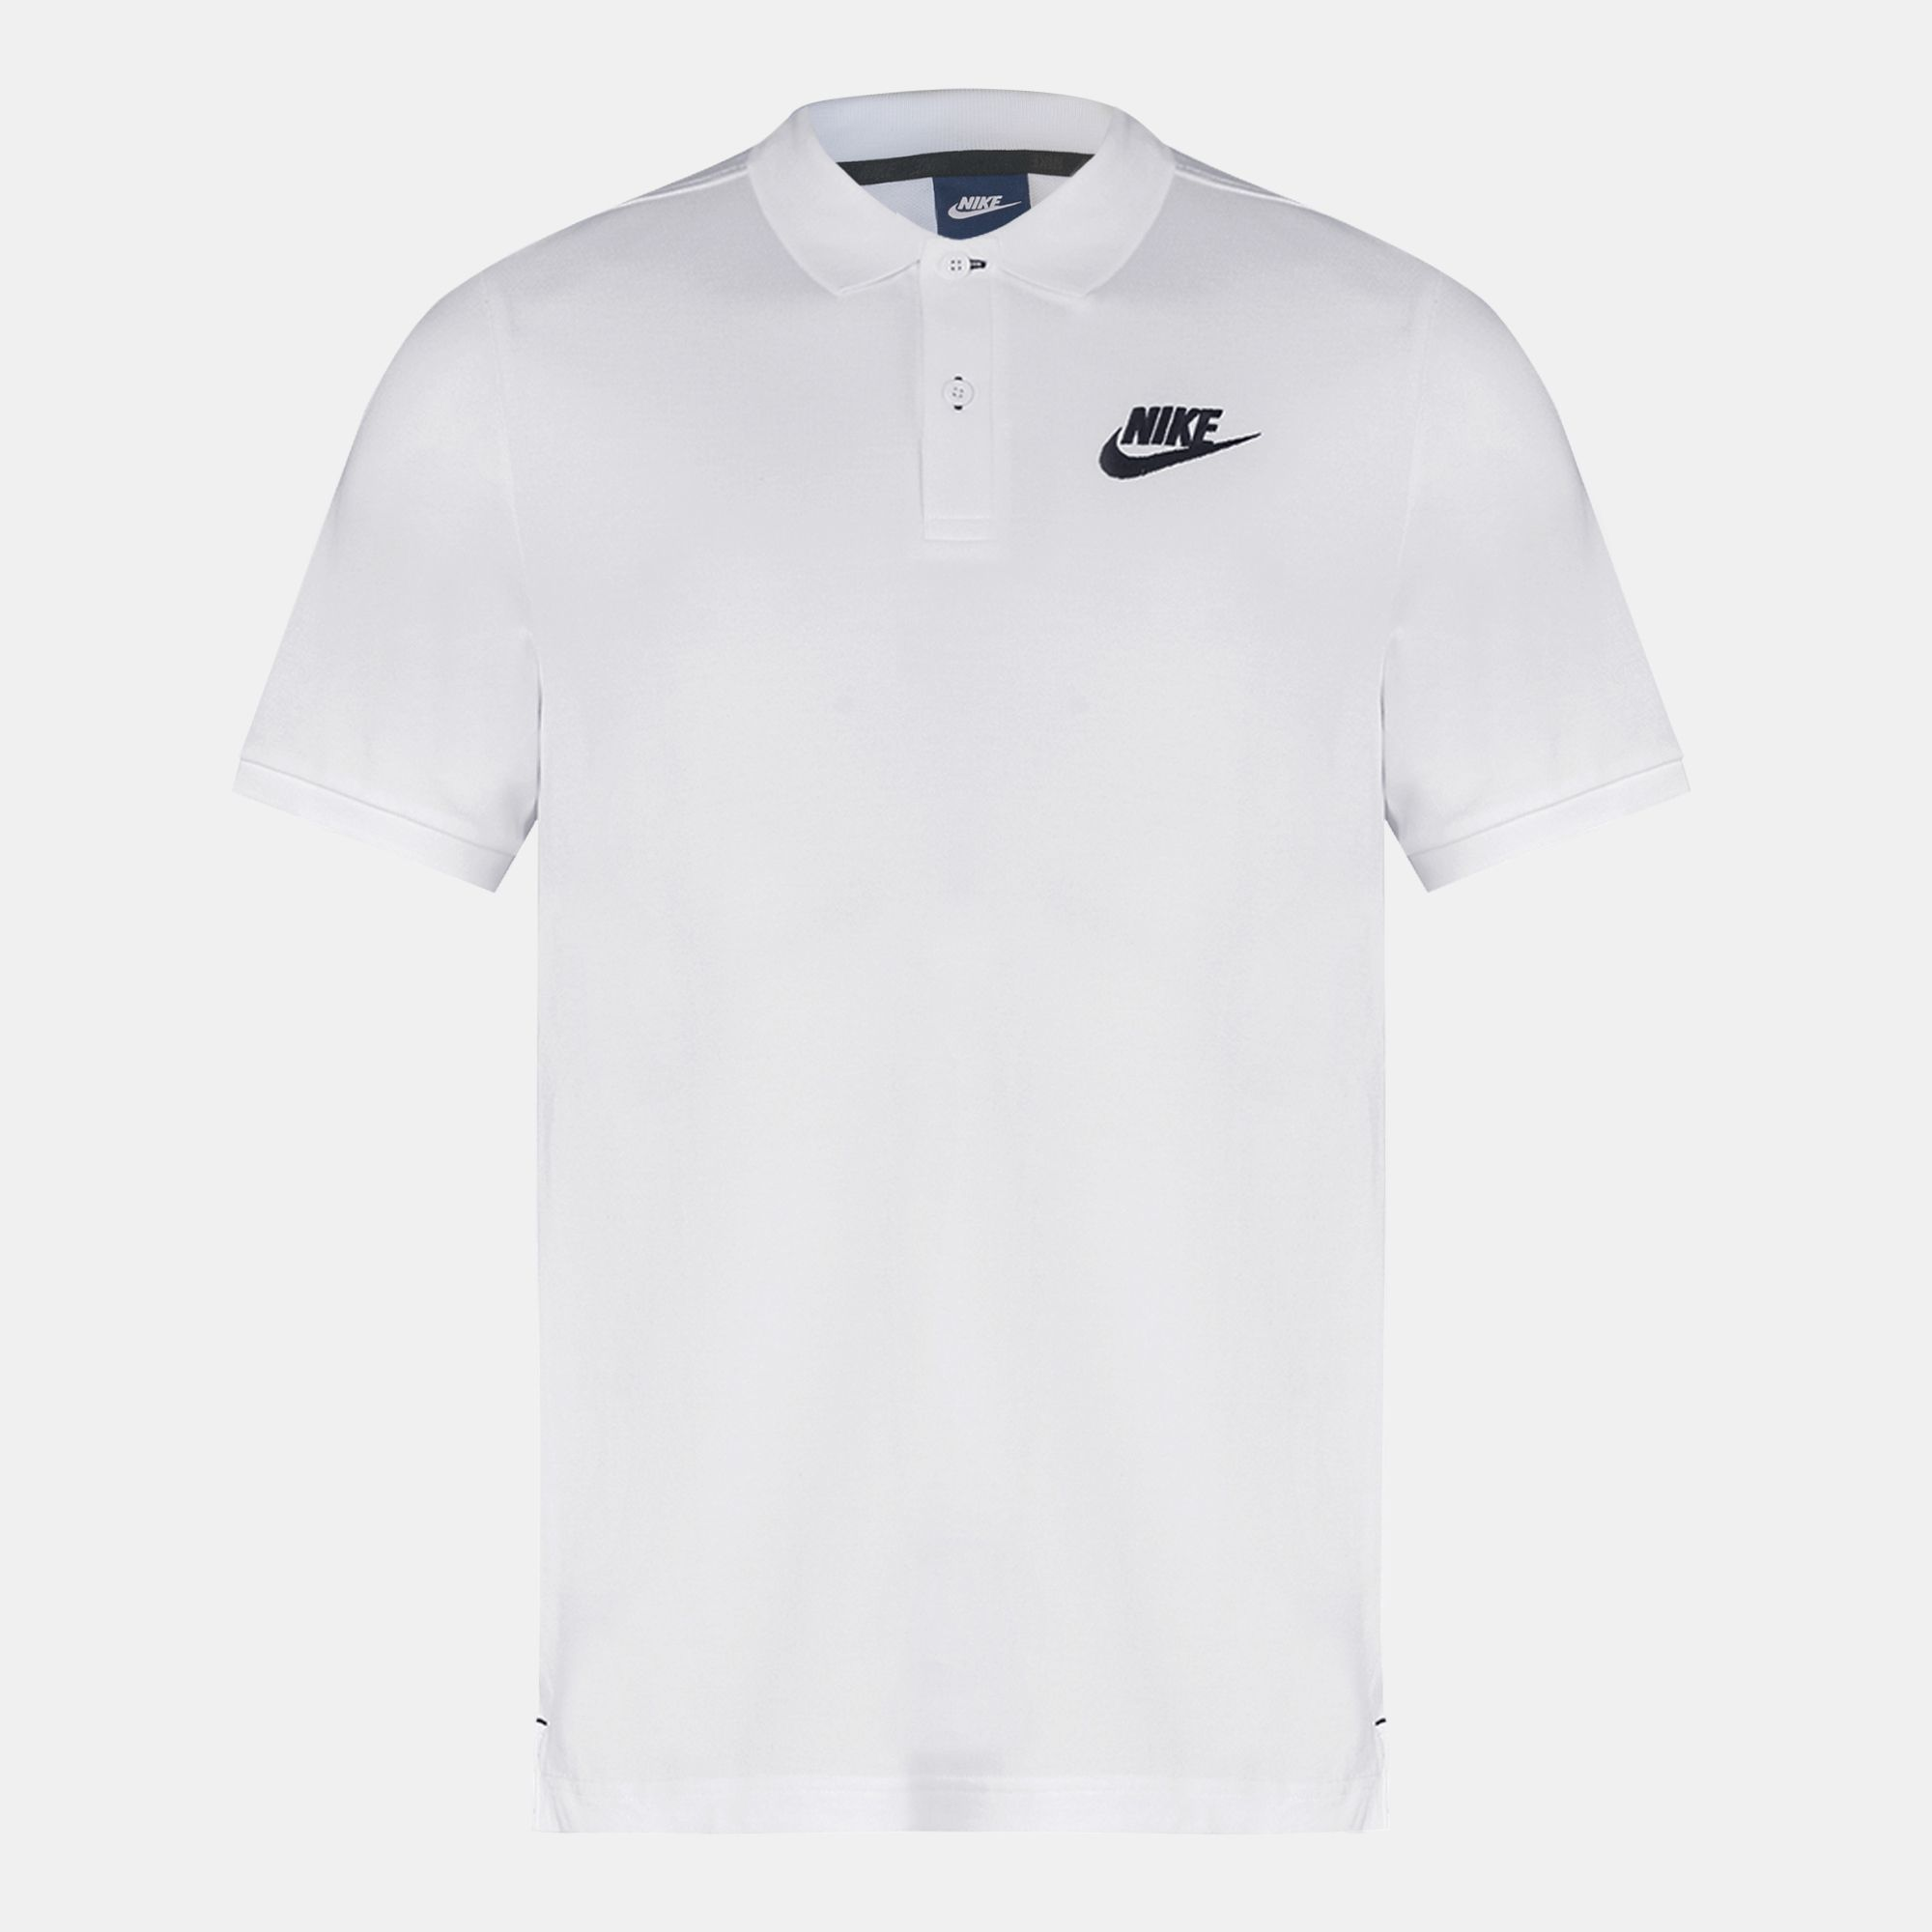 a8032a36ebd07 Shop White Nike NSW PQ Matchup Polo Shirt for Mens by Nike